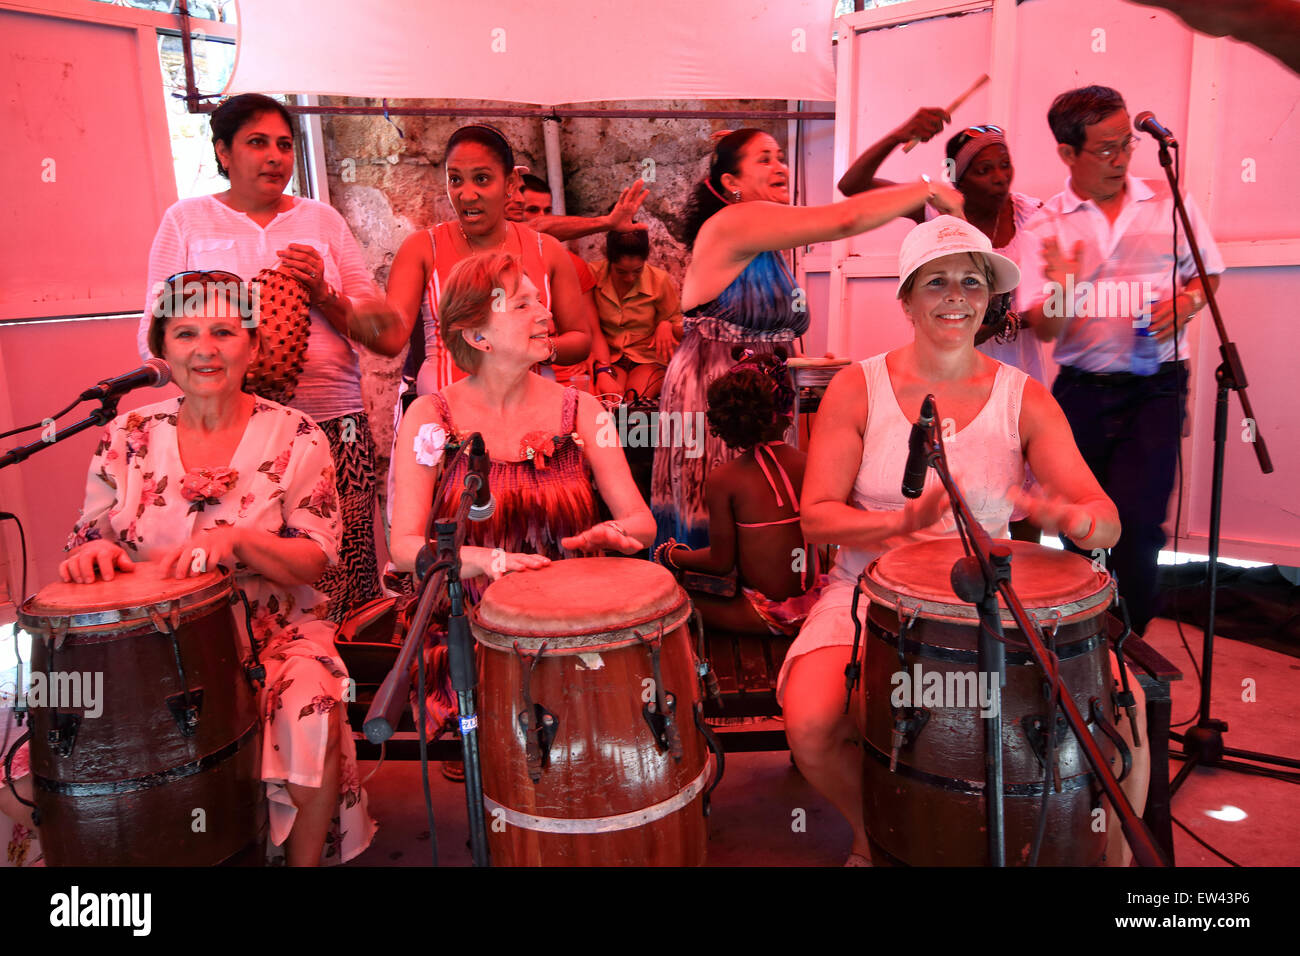 Tourists joining Cuban local residents, partying and performing in a cafe bar in Caibarien, Cuba - Stock Image